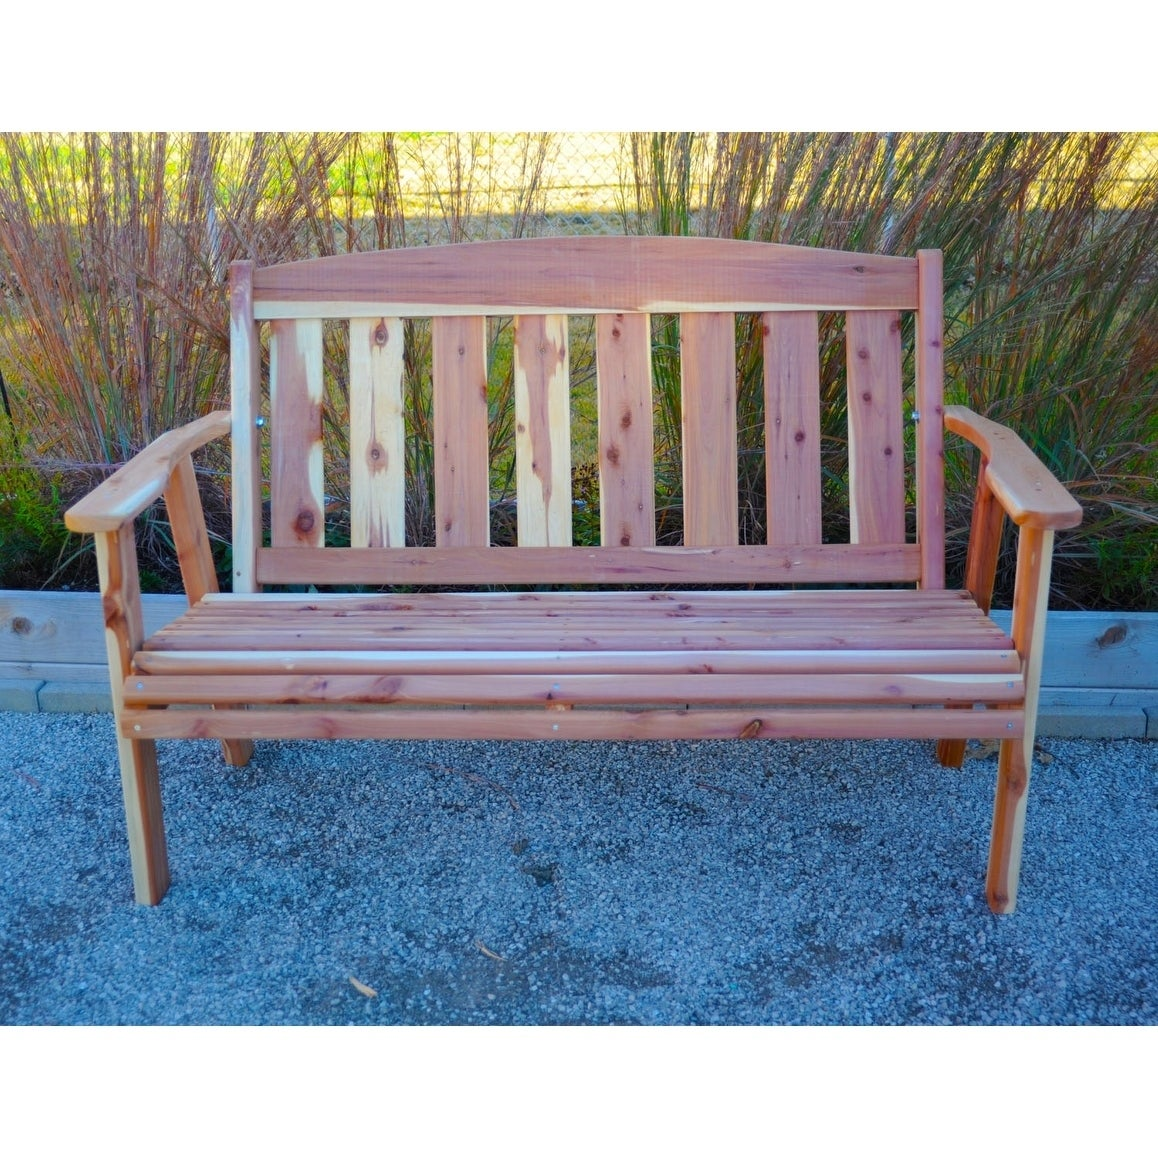 Offex 4 Hand Crafted Natural Solid Cedar Outdoor Bench Brown Free Shipping Today 21466251